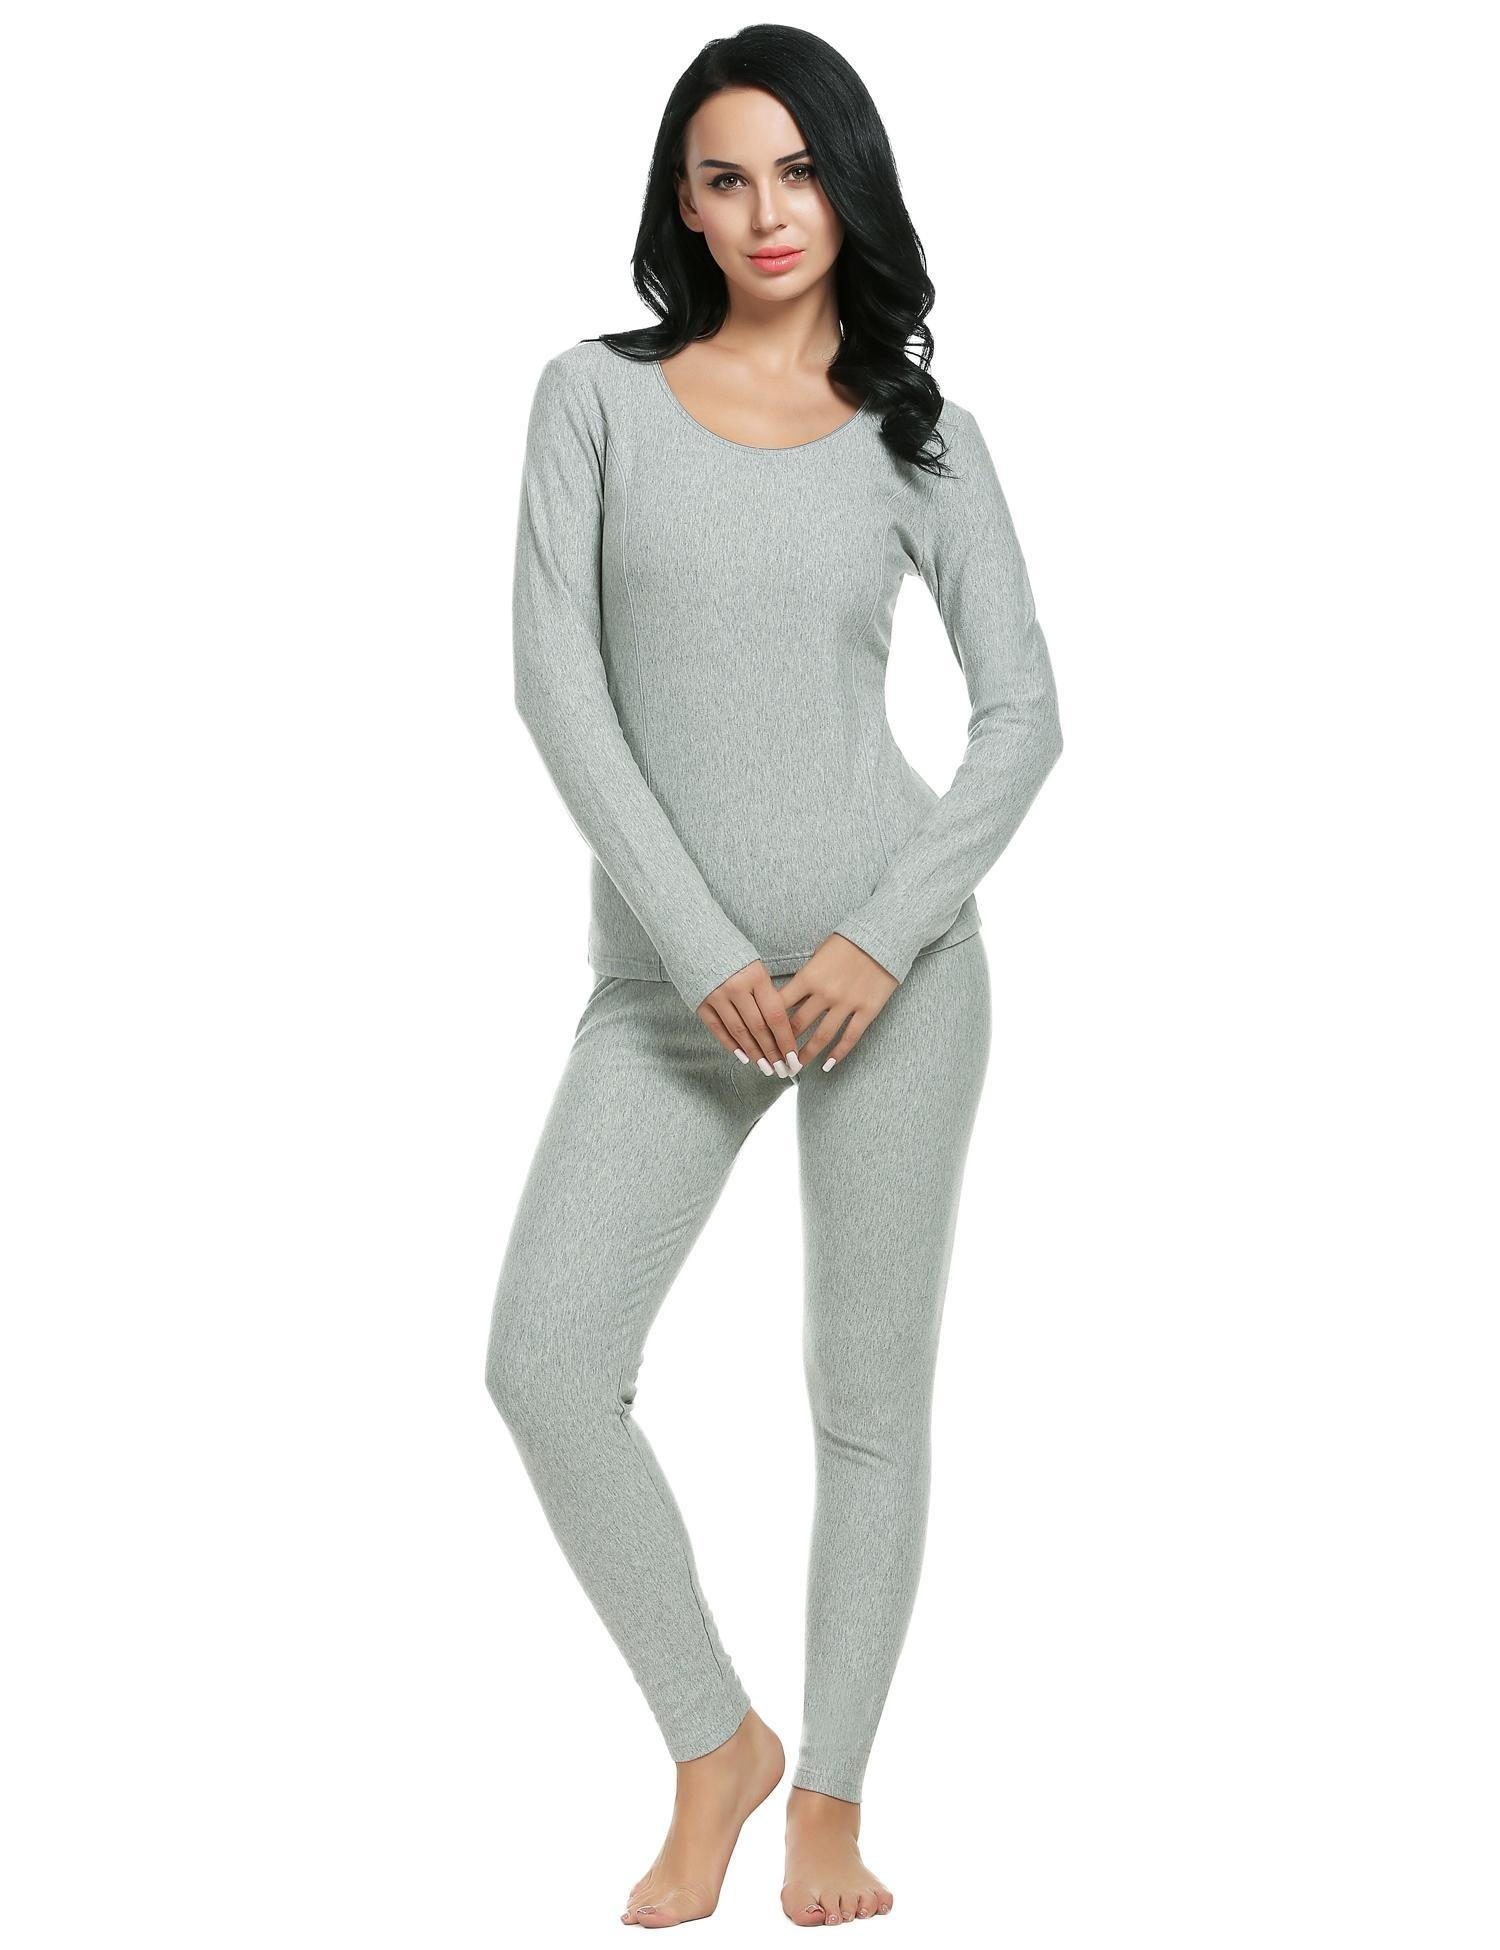 Ekouaer Women's Thermal Wear Winter Long Johns Warm Pajama Set Plus Size(Gray,Large)